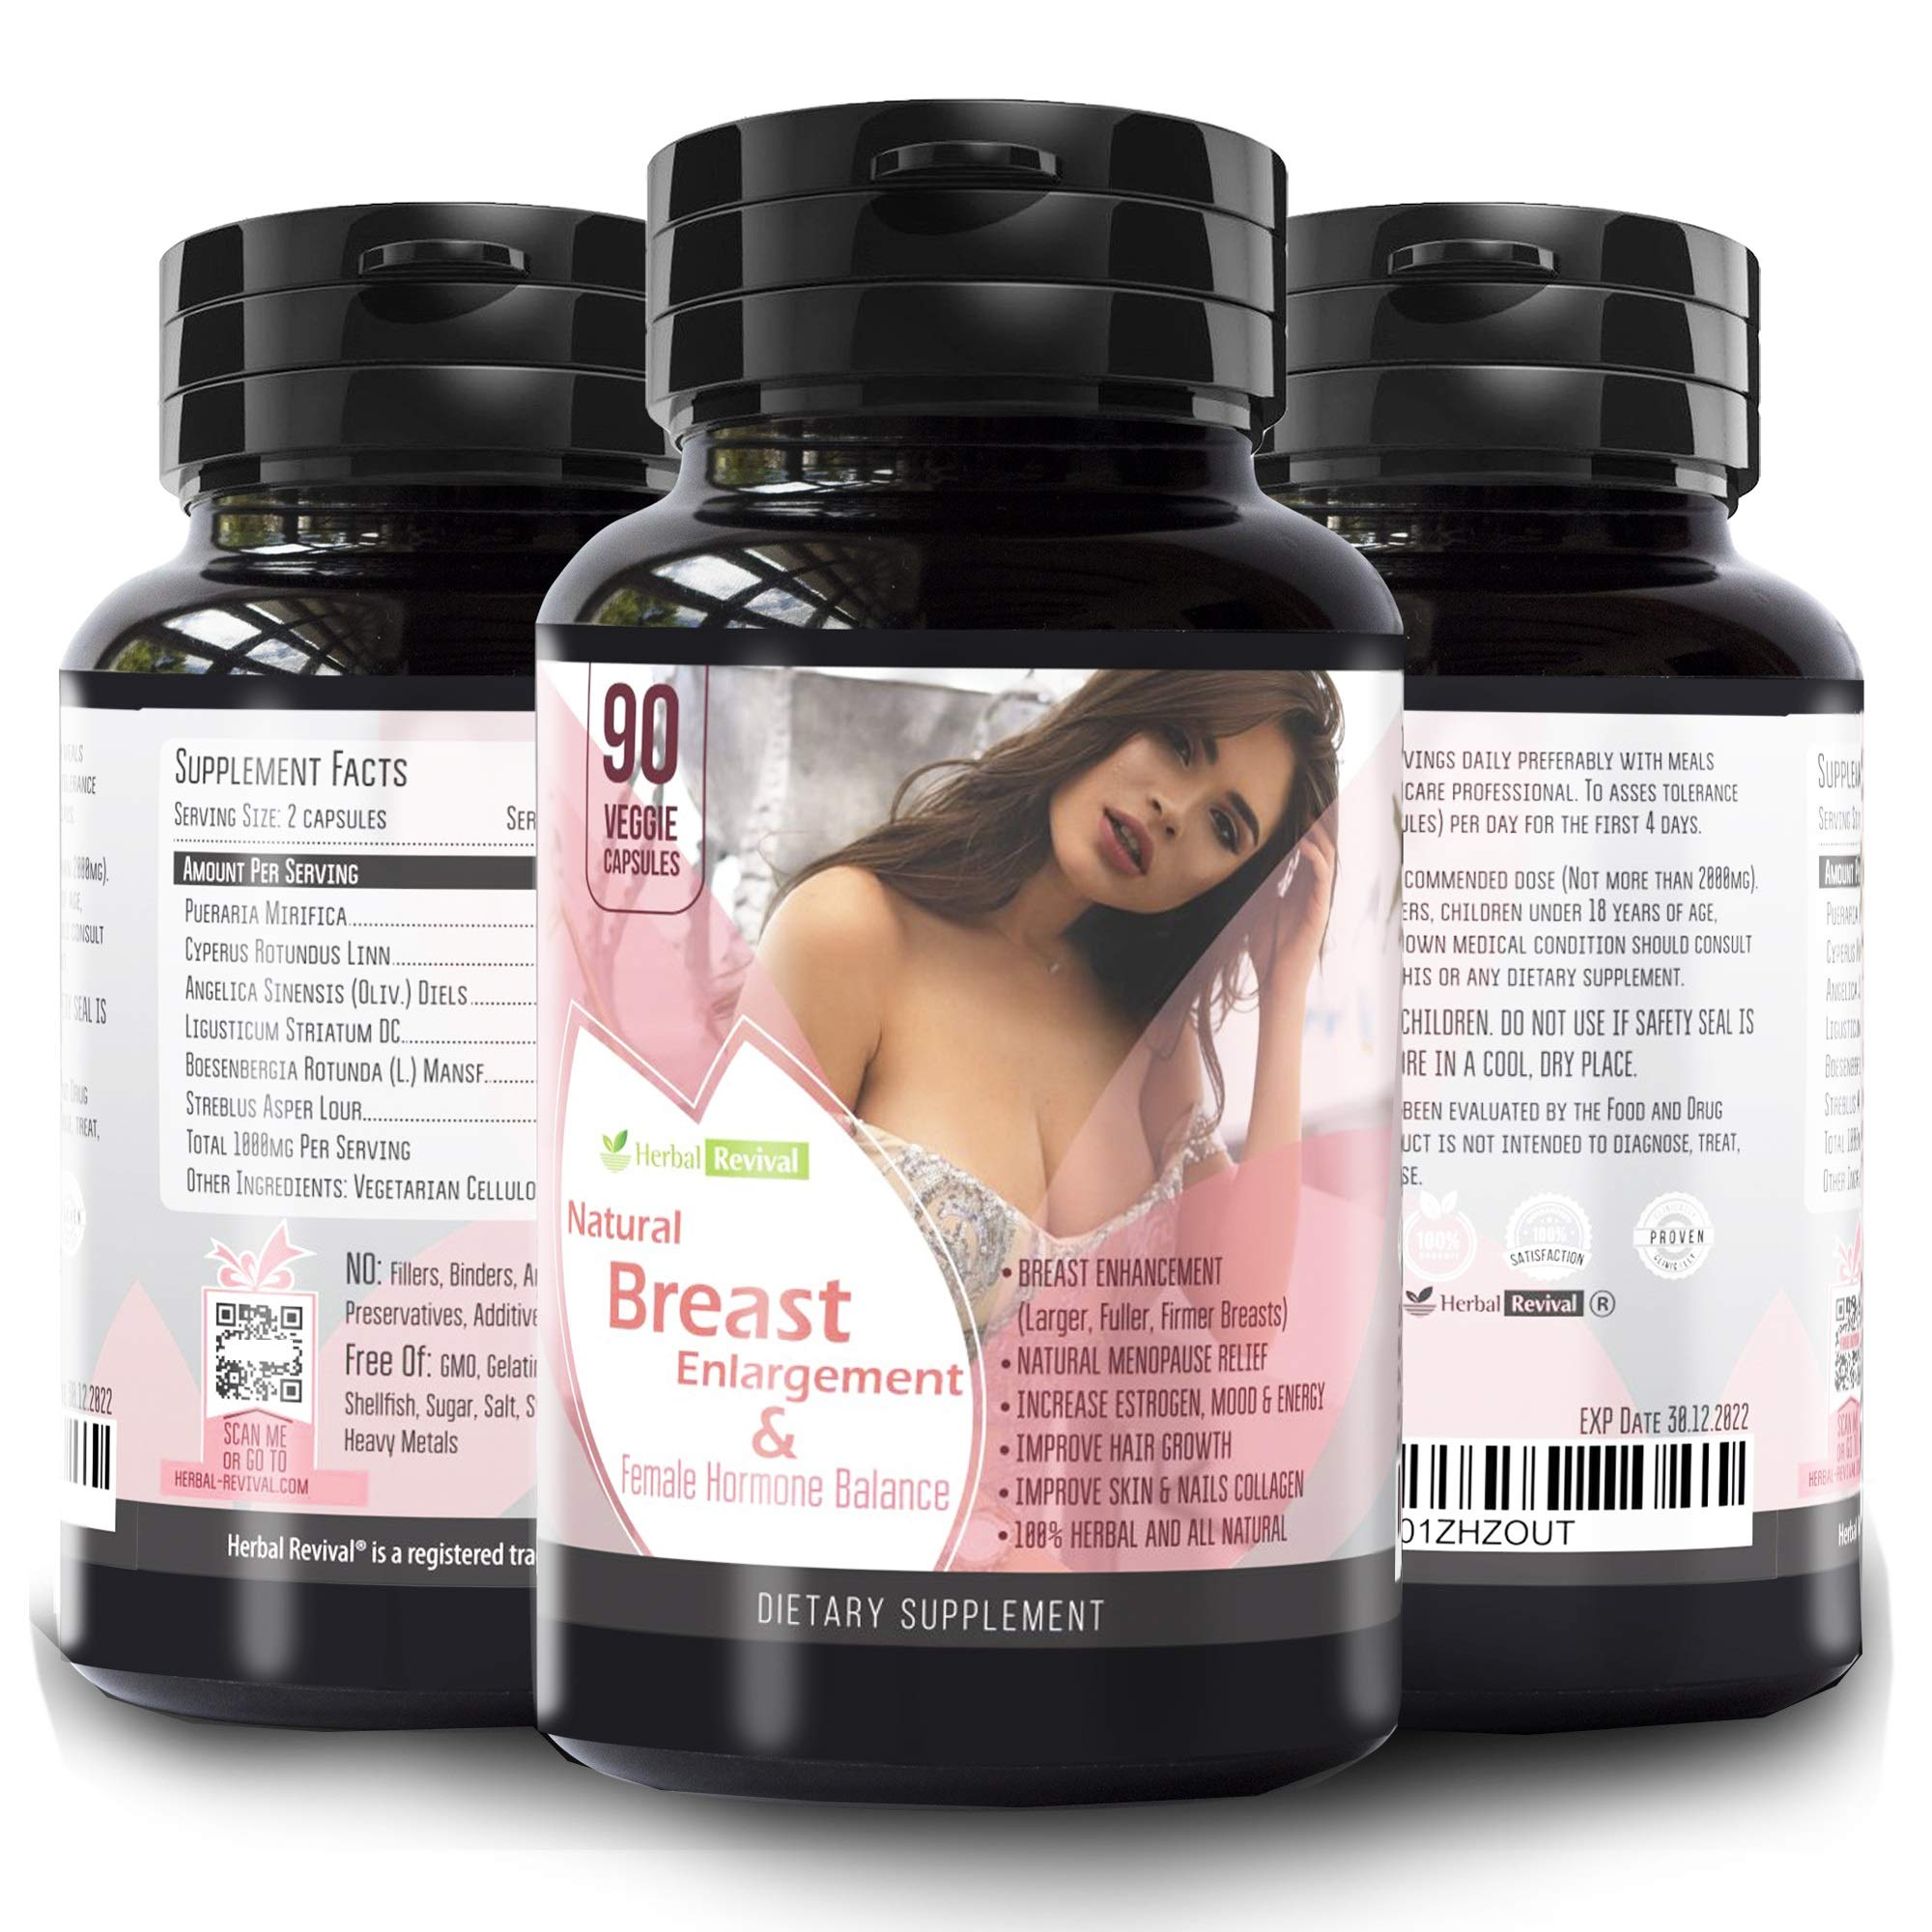 Pueraria Mirifica Natural Breast Enhancement - Breast Lift, Breast Growth, 90 Size Enhancement and Breast Enhancer Pills - Menopause Relief, Vaginal Health, Boosts Hair Growth Daily Multivitamin